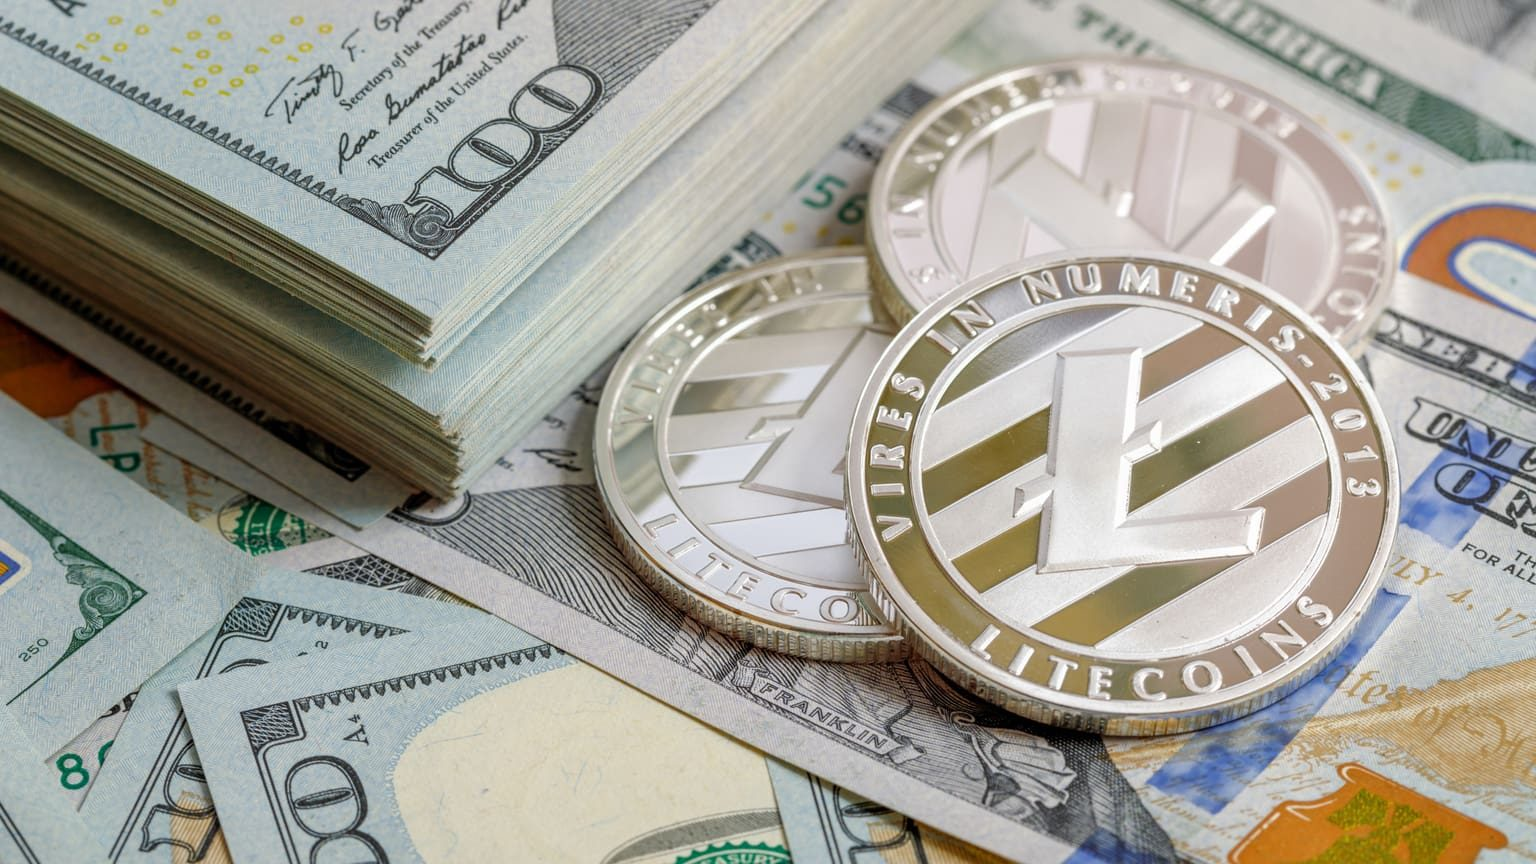 Litecoin on top of US dollars